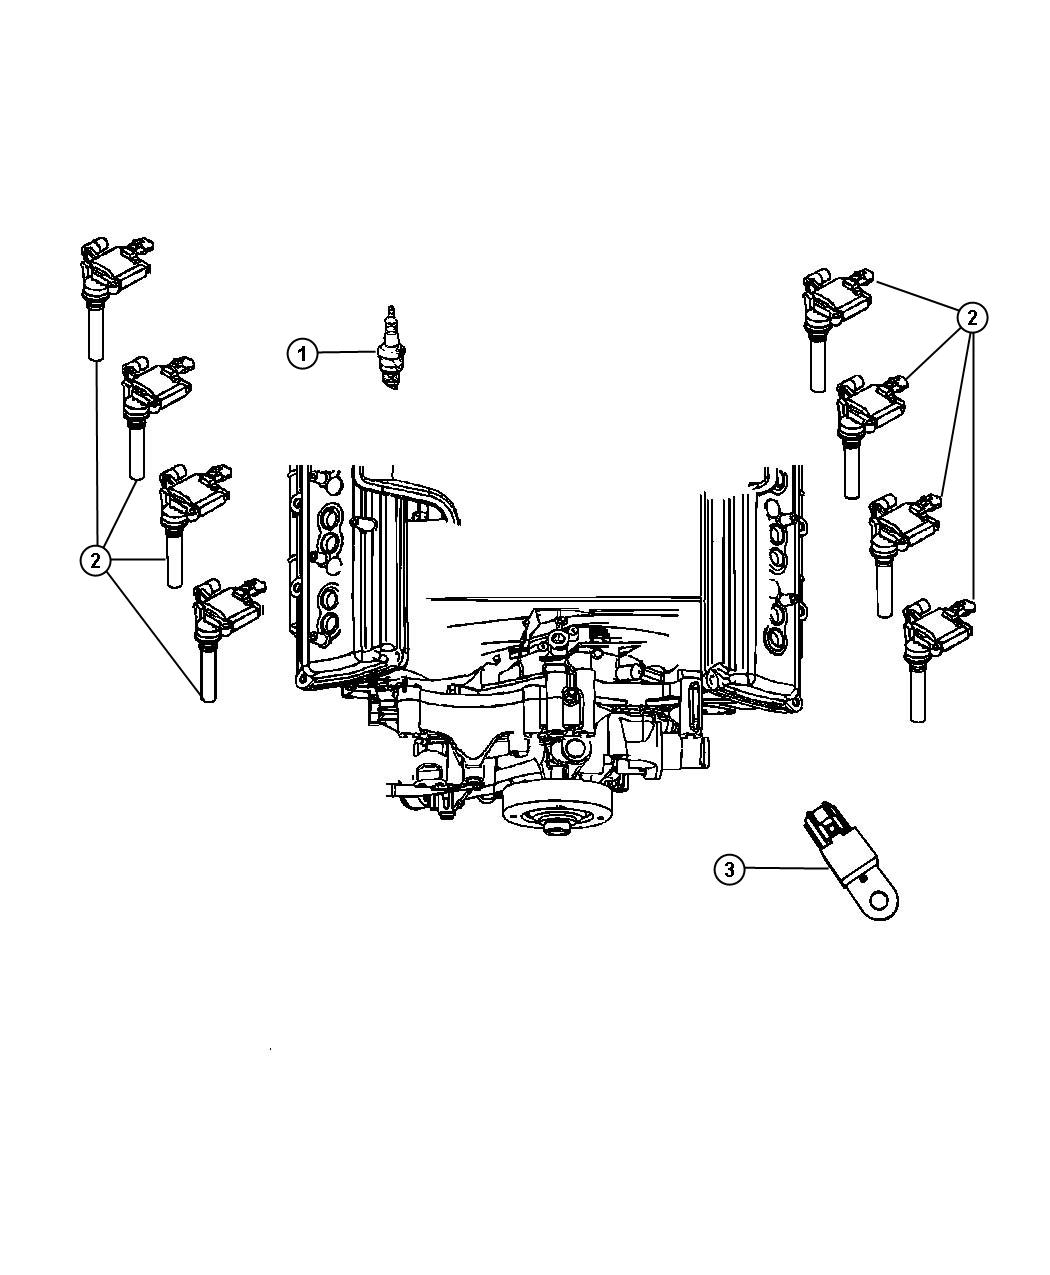 P 0996b43f8036de4d moreover Kia Soul Wiring Diagrams together with 70394 Intake Manifold Removal Cleanup Carbon Buildup in addition Kia Soul Headlights Wiring Diagram together with Kia Optima 2002 Power Steering Diagram. on 2012 kia soul knock sensor location